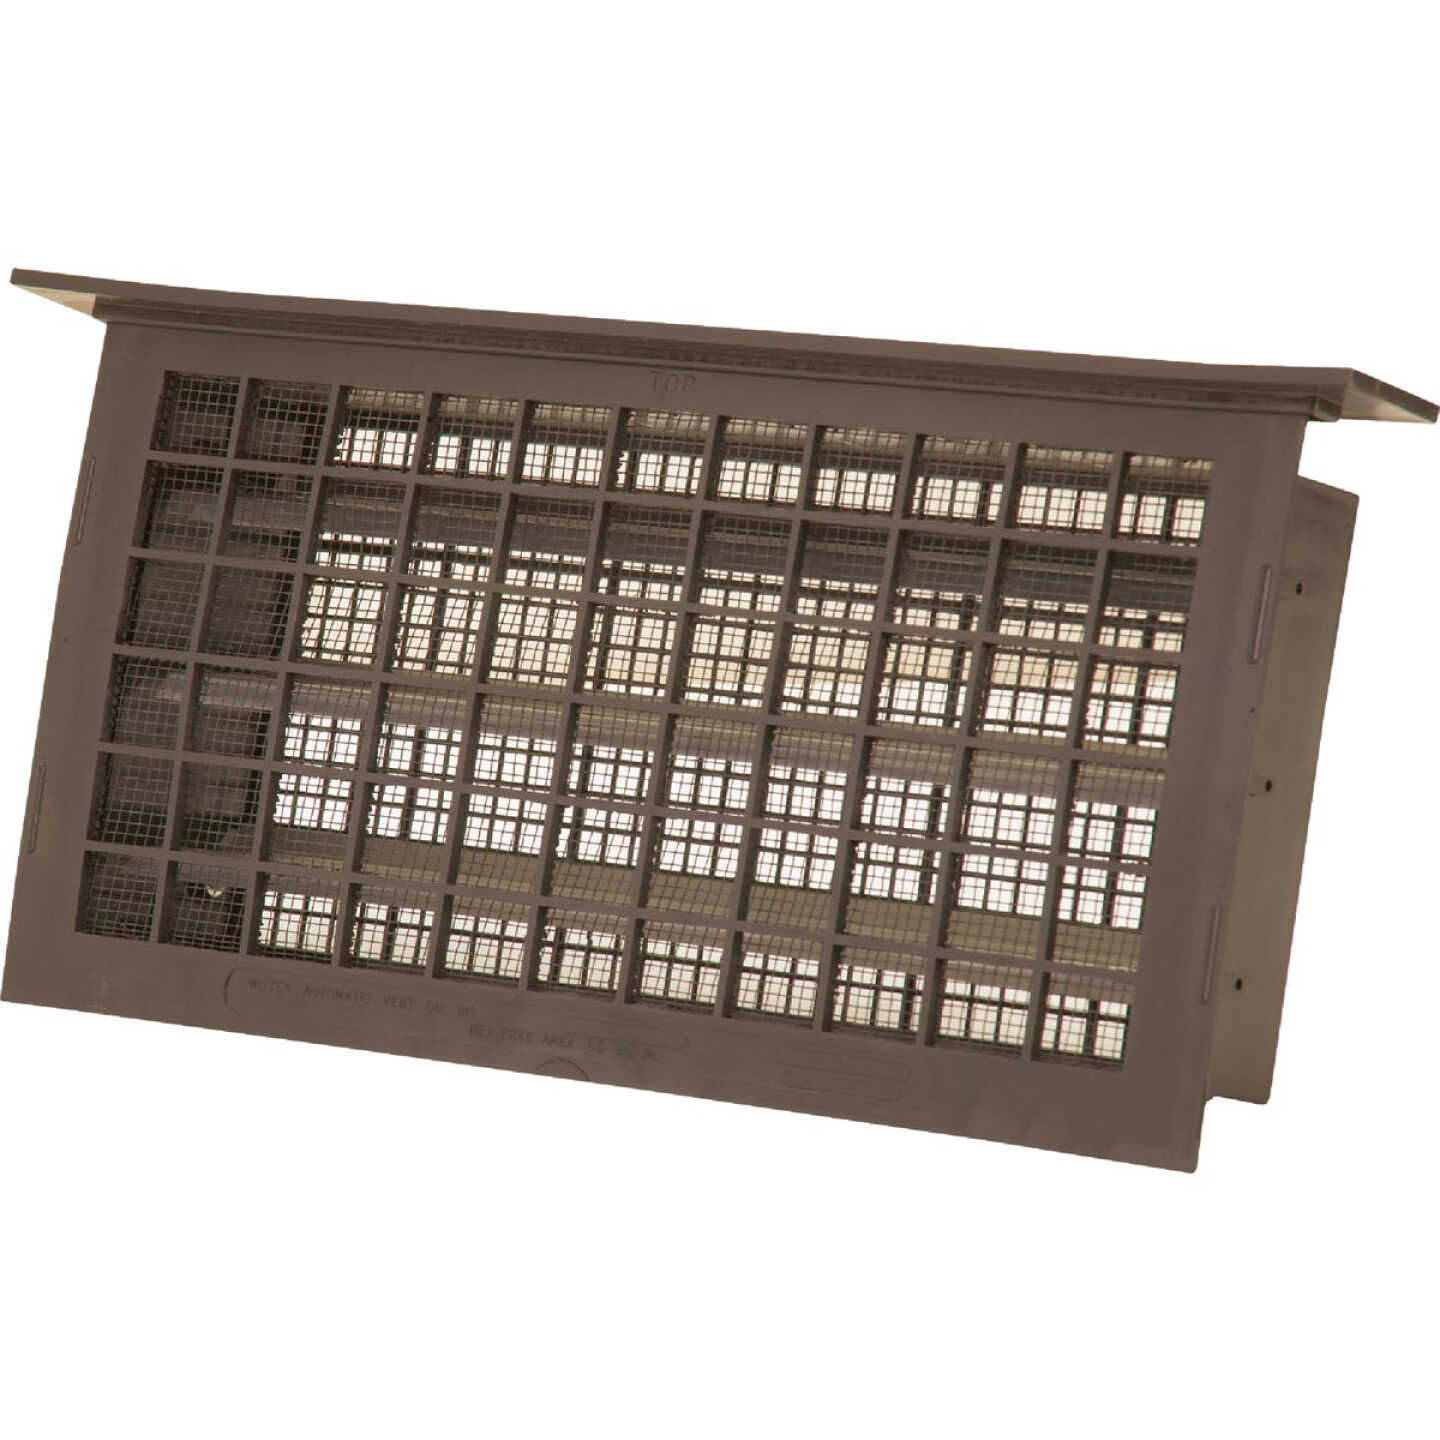 Witten 8 In. x 16 In. Brown Automatic Foundation Ventilator with Lintel Image 1